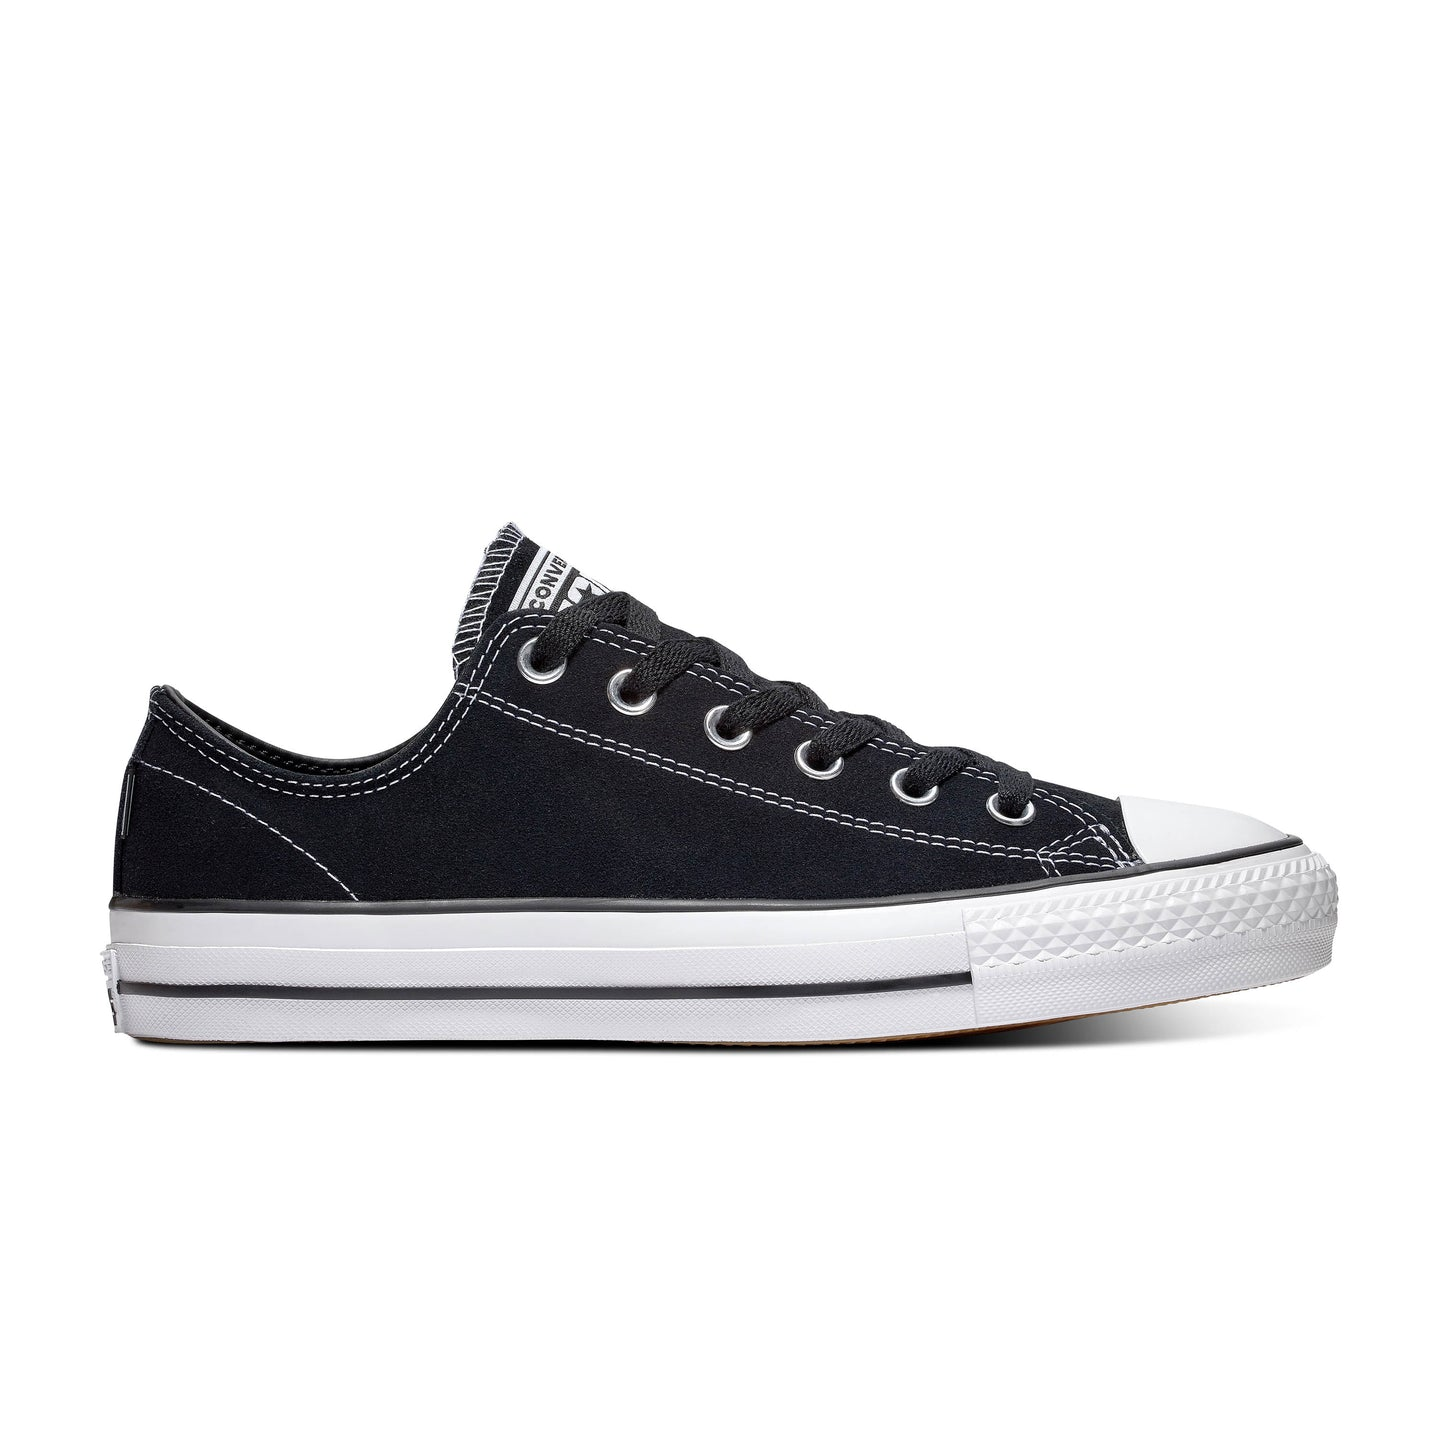 Zapatillas Converse Chuck Taylor All Star Pro OX